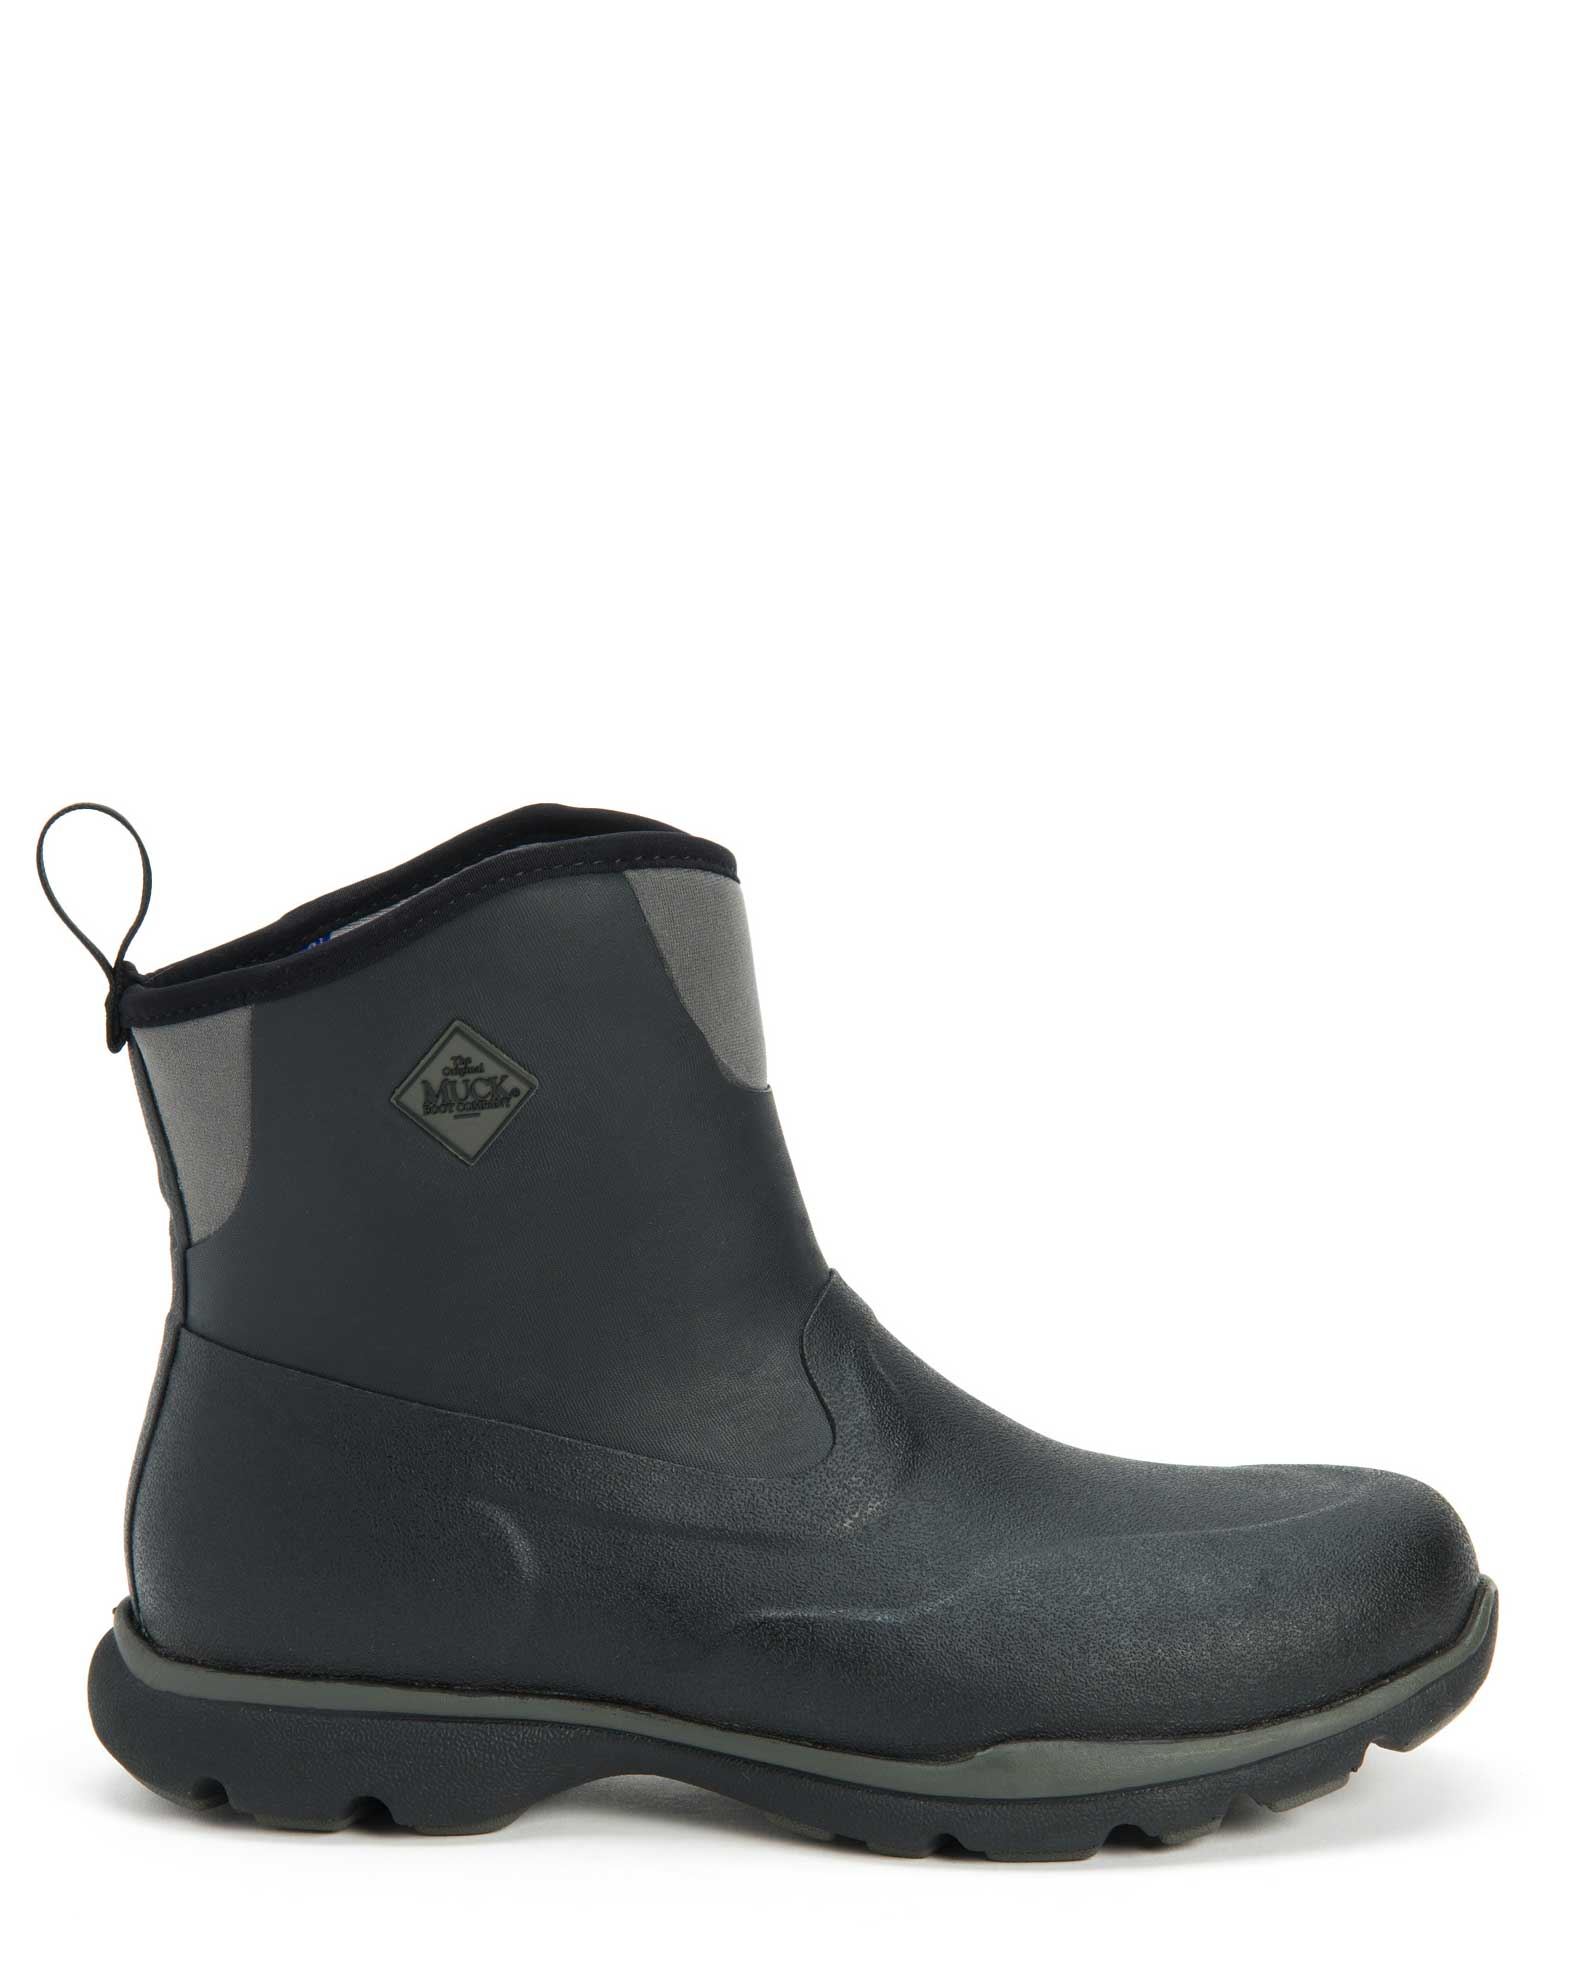 Excursion Pro Mid Mens Gumboots